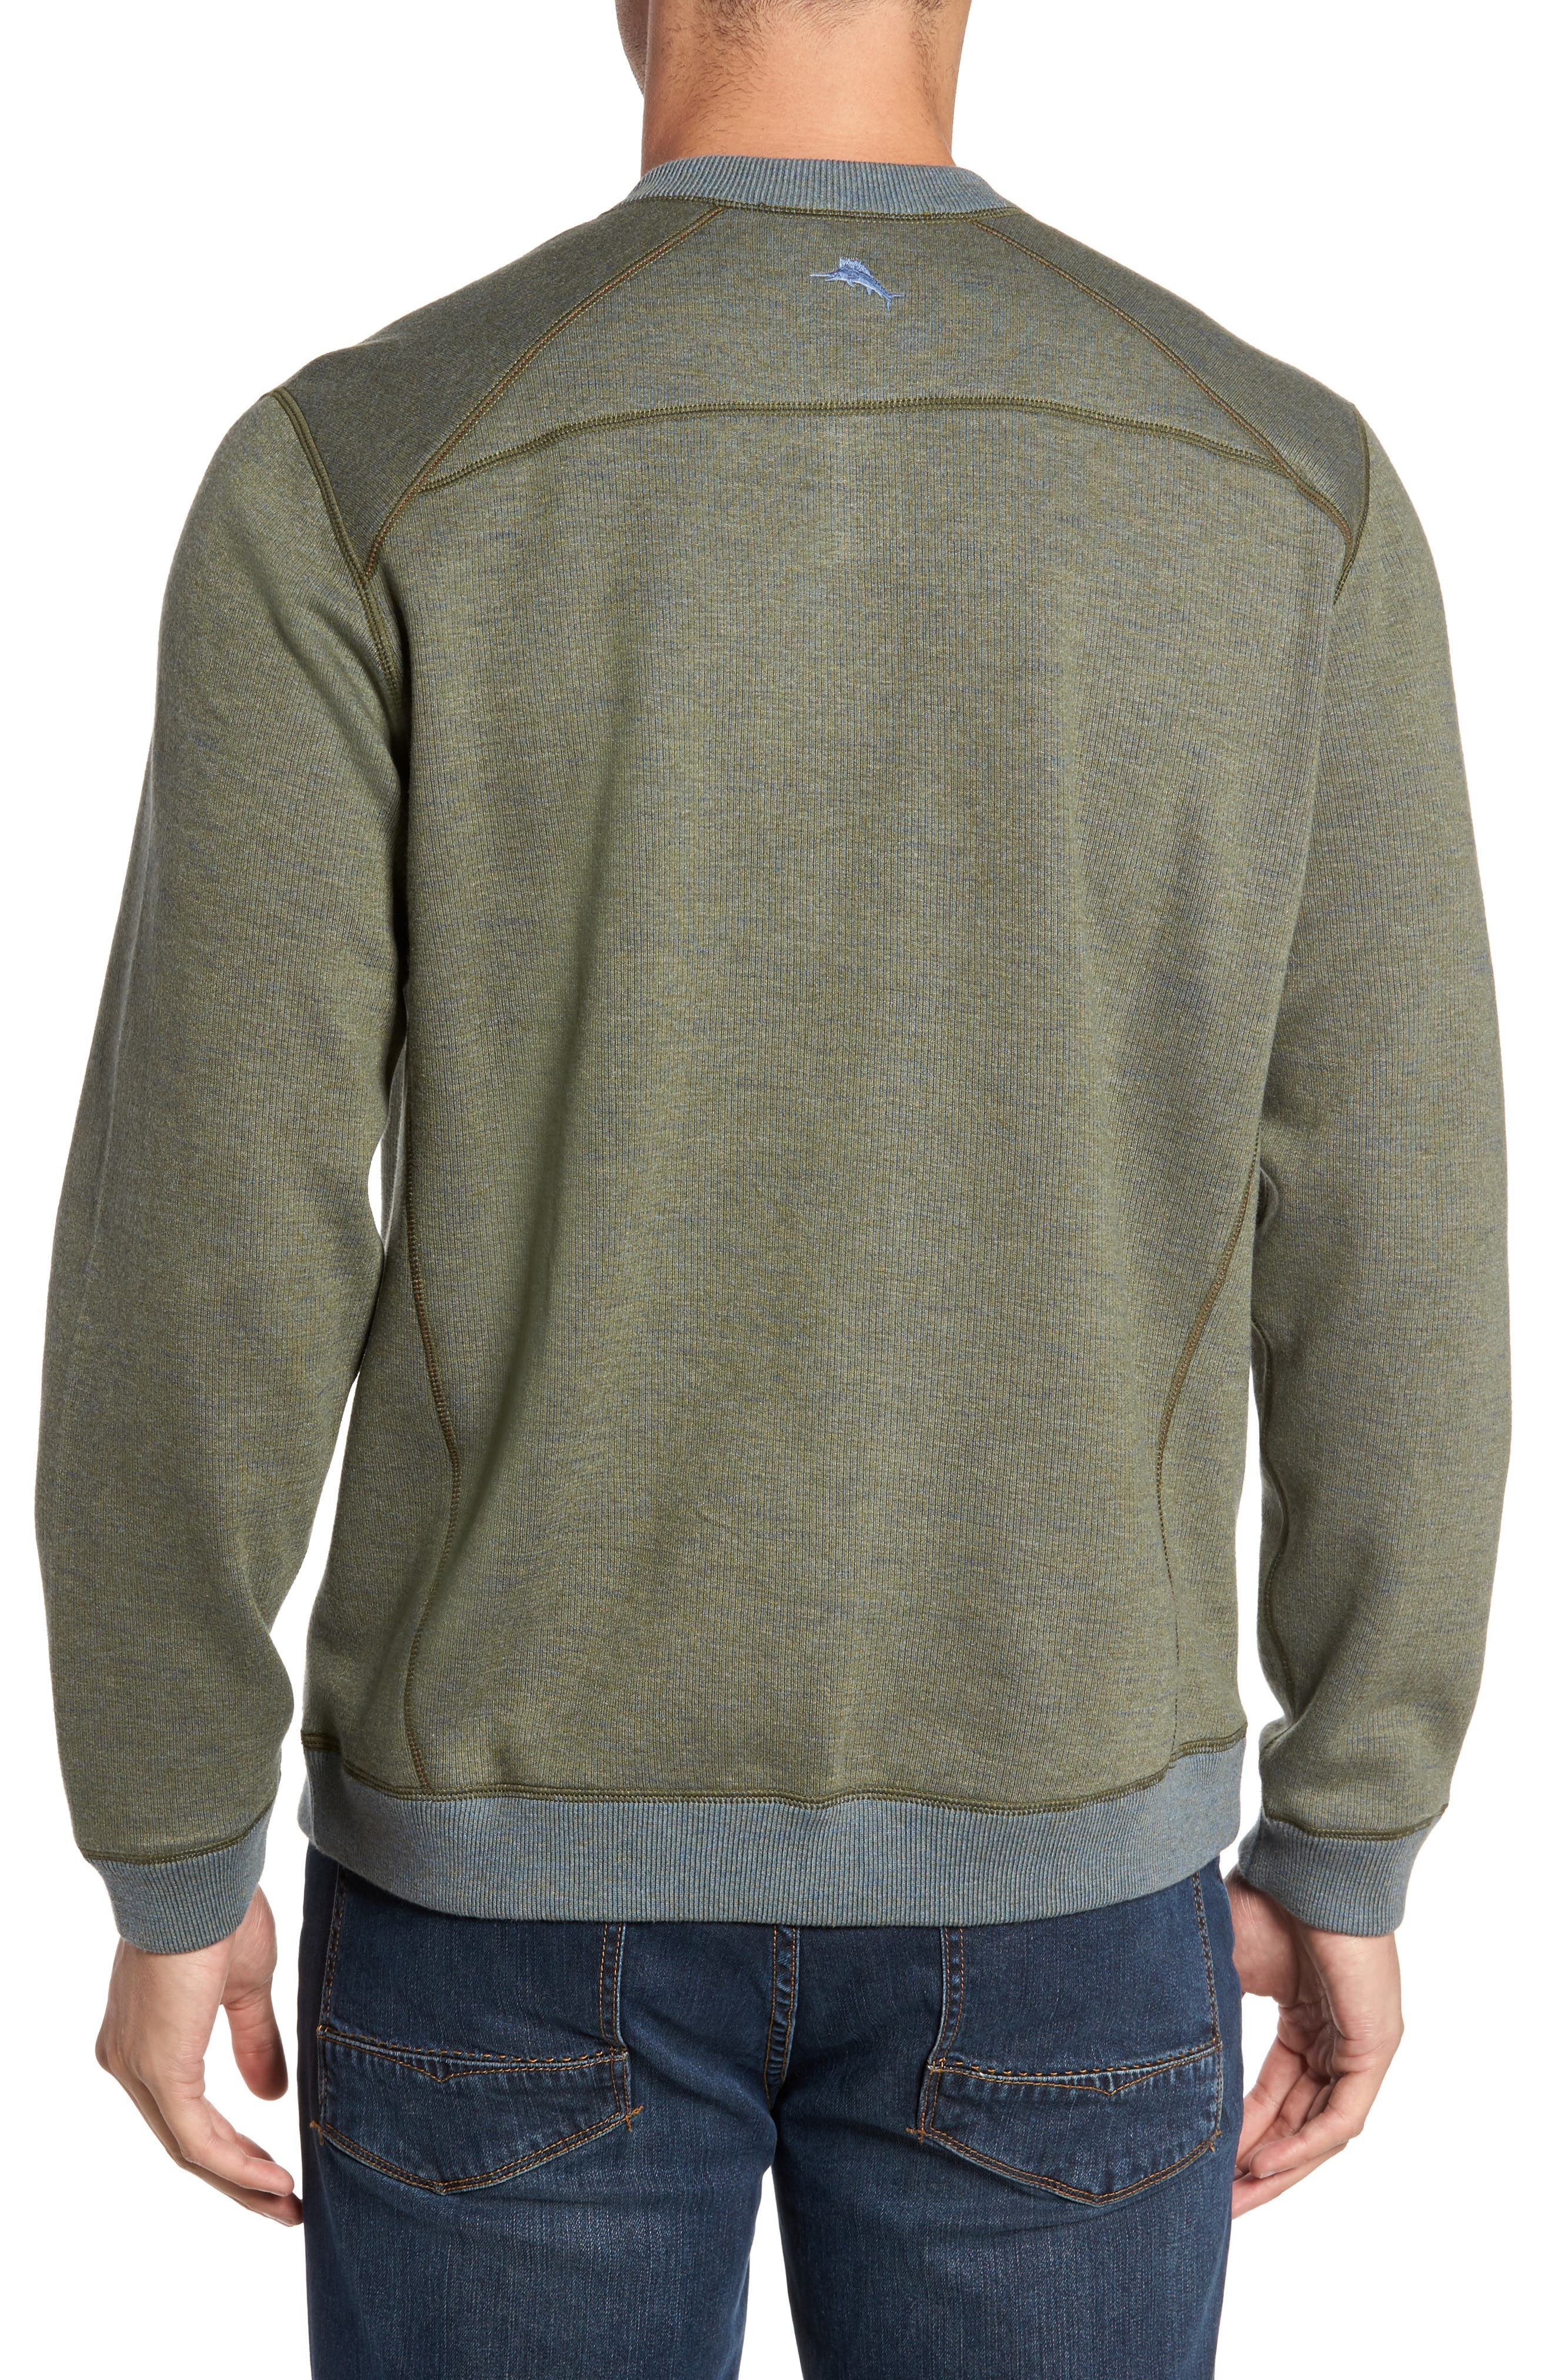 Flipsider Abaco Pullover,                             Alternate thumbnail 8, color,